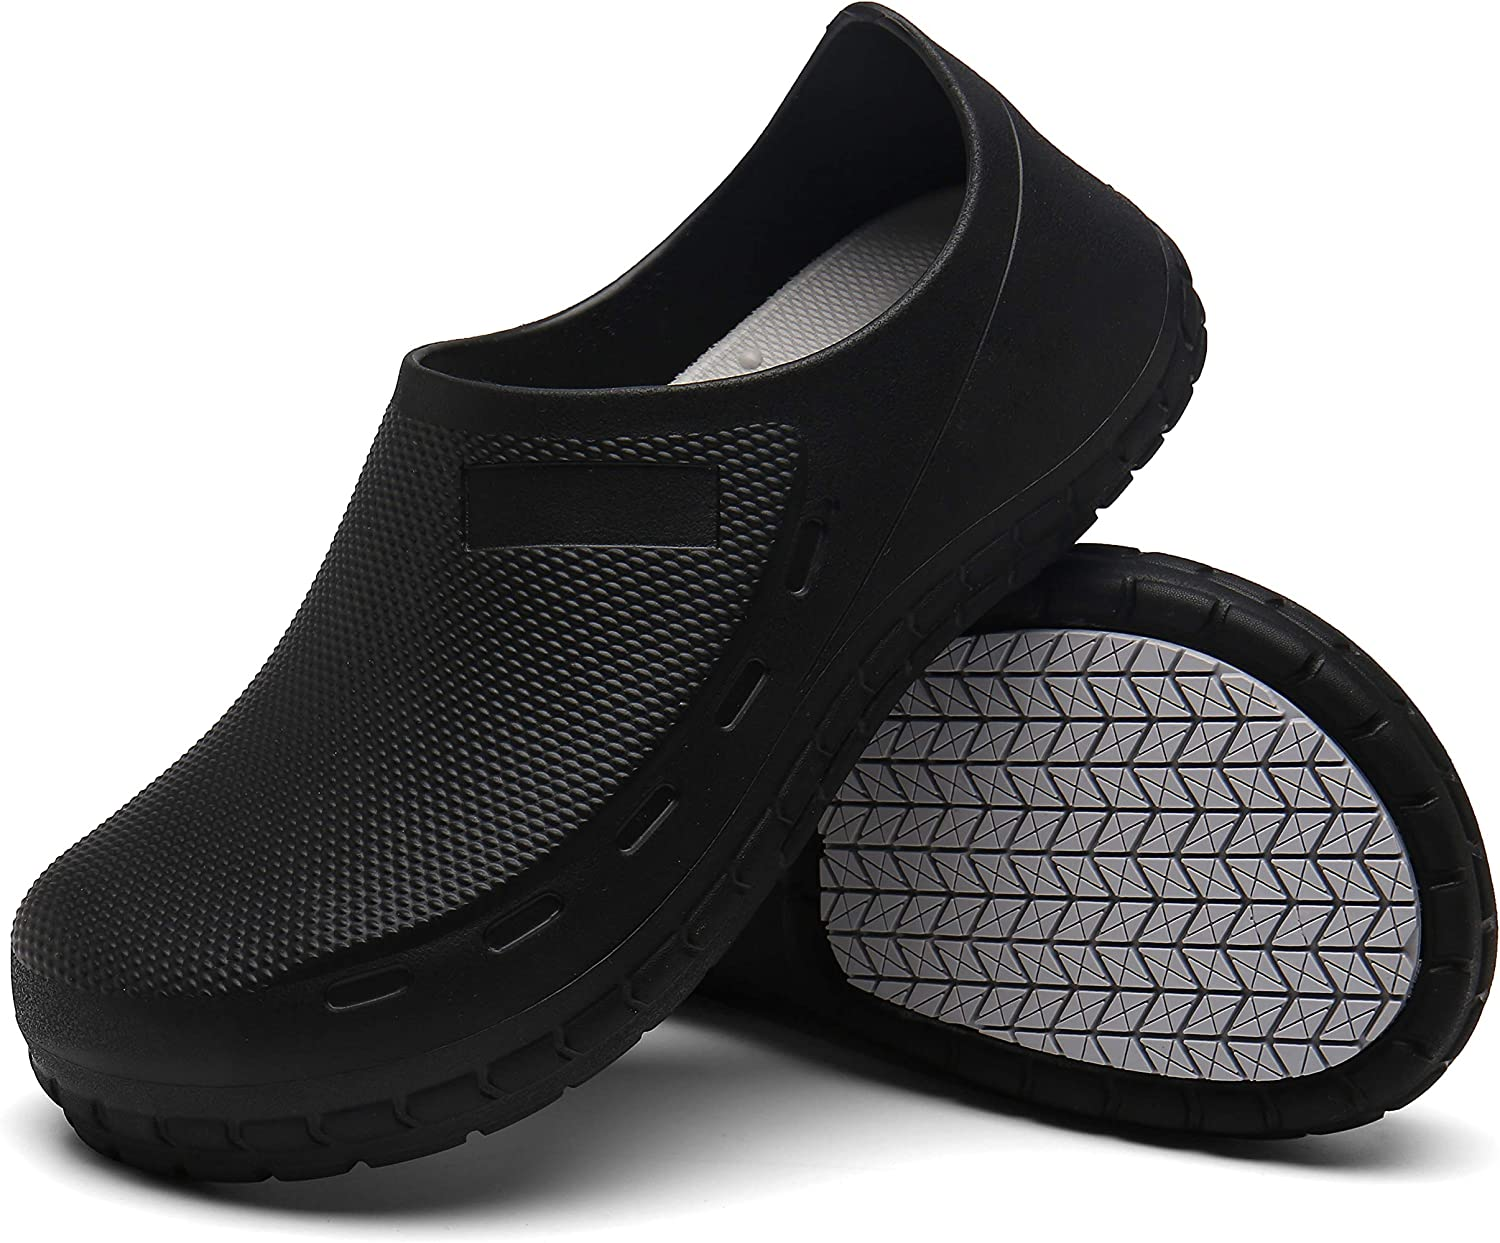 AW ANY WELL Unisex Chef Shoes Professional Oil Water Resistant Nursing Non-Slip Black White Waterproof Safety Working Shoes for Kitchen Garden Bathroom Construction Medical Shoes